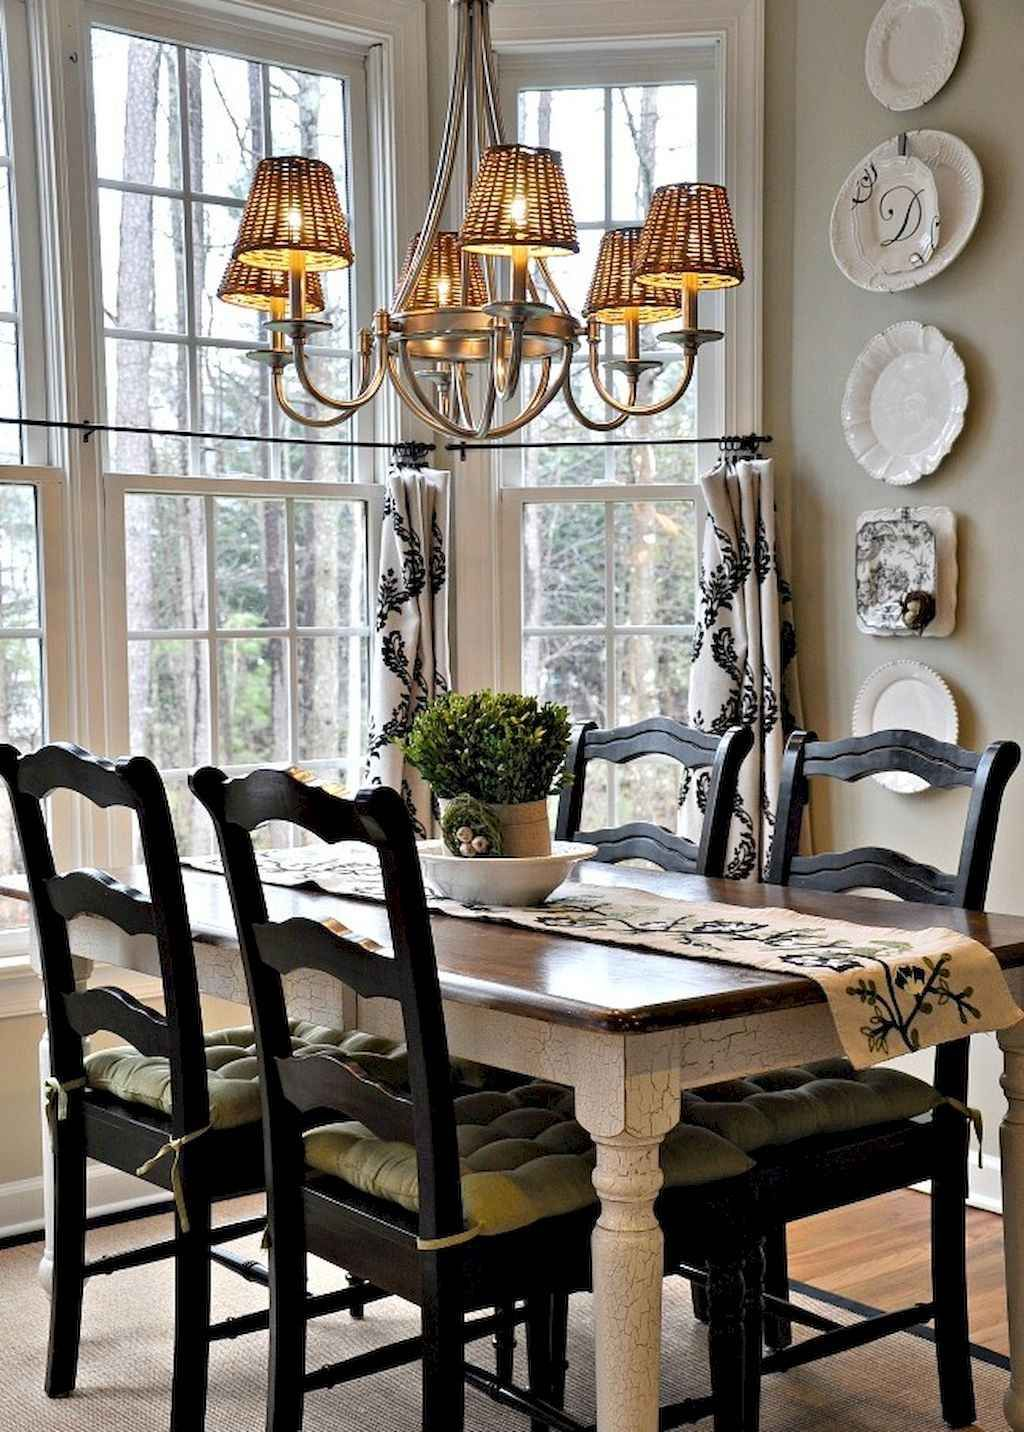 French Country Dining Room Decor, French Country Dining Room Table